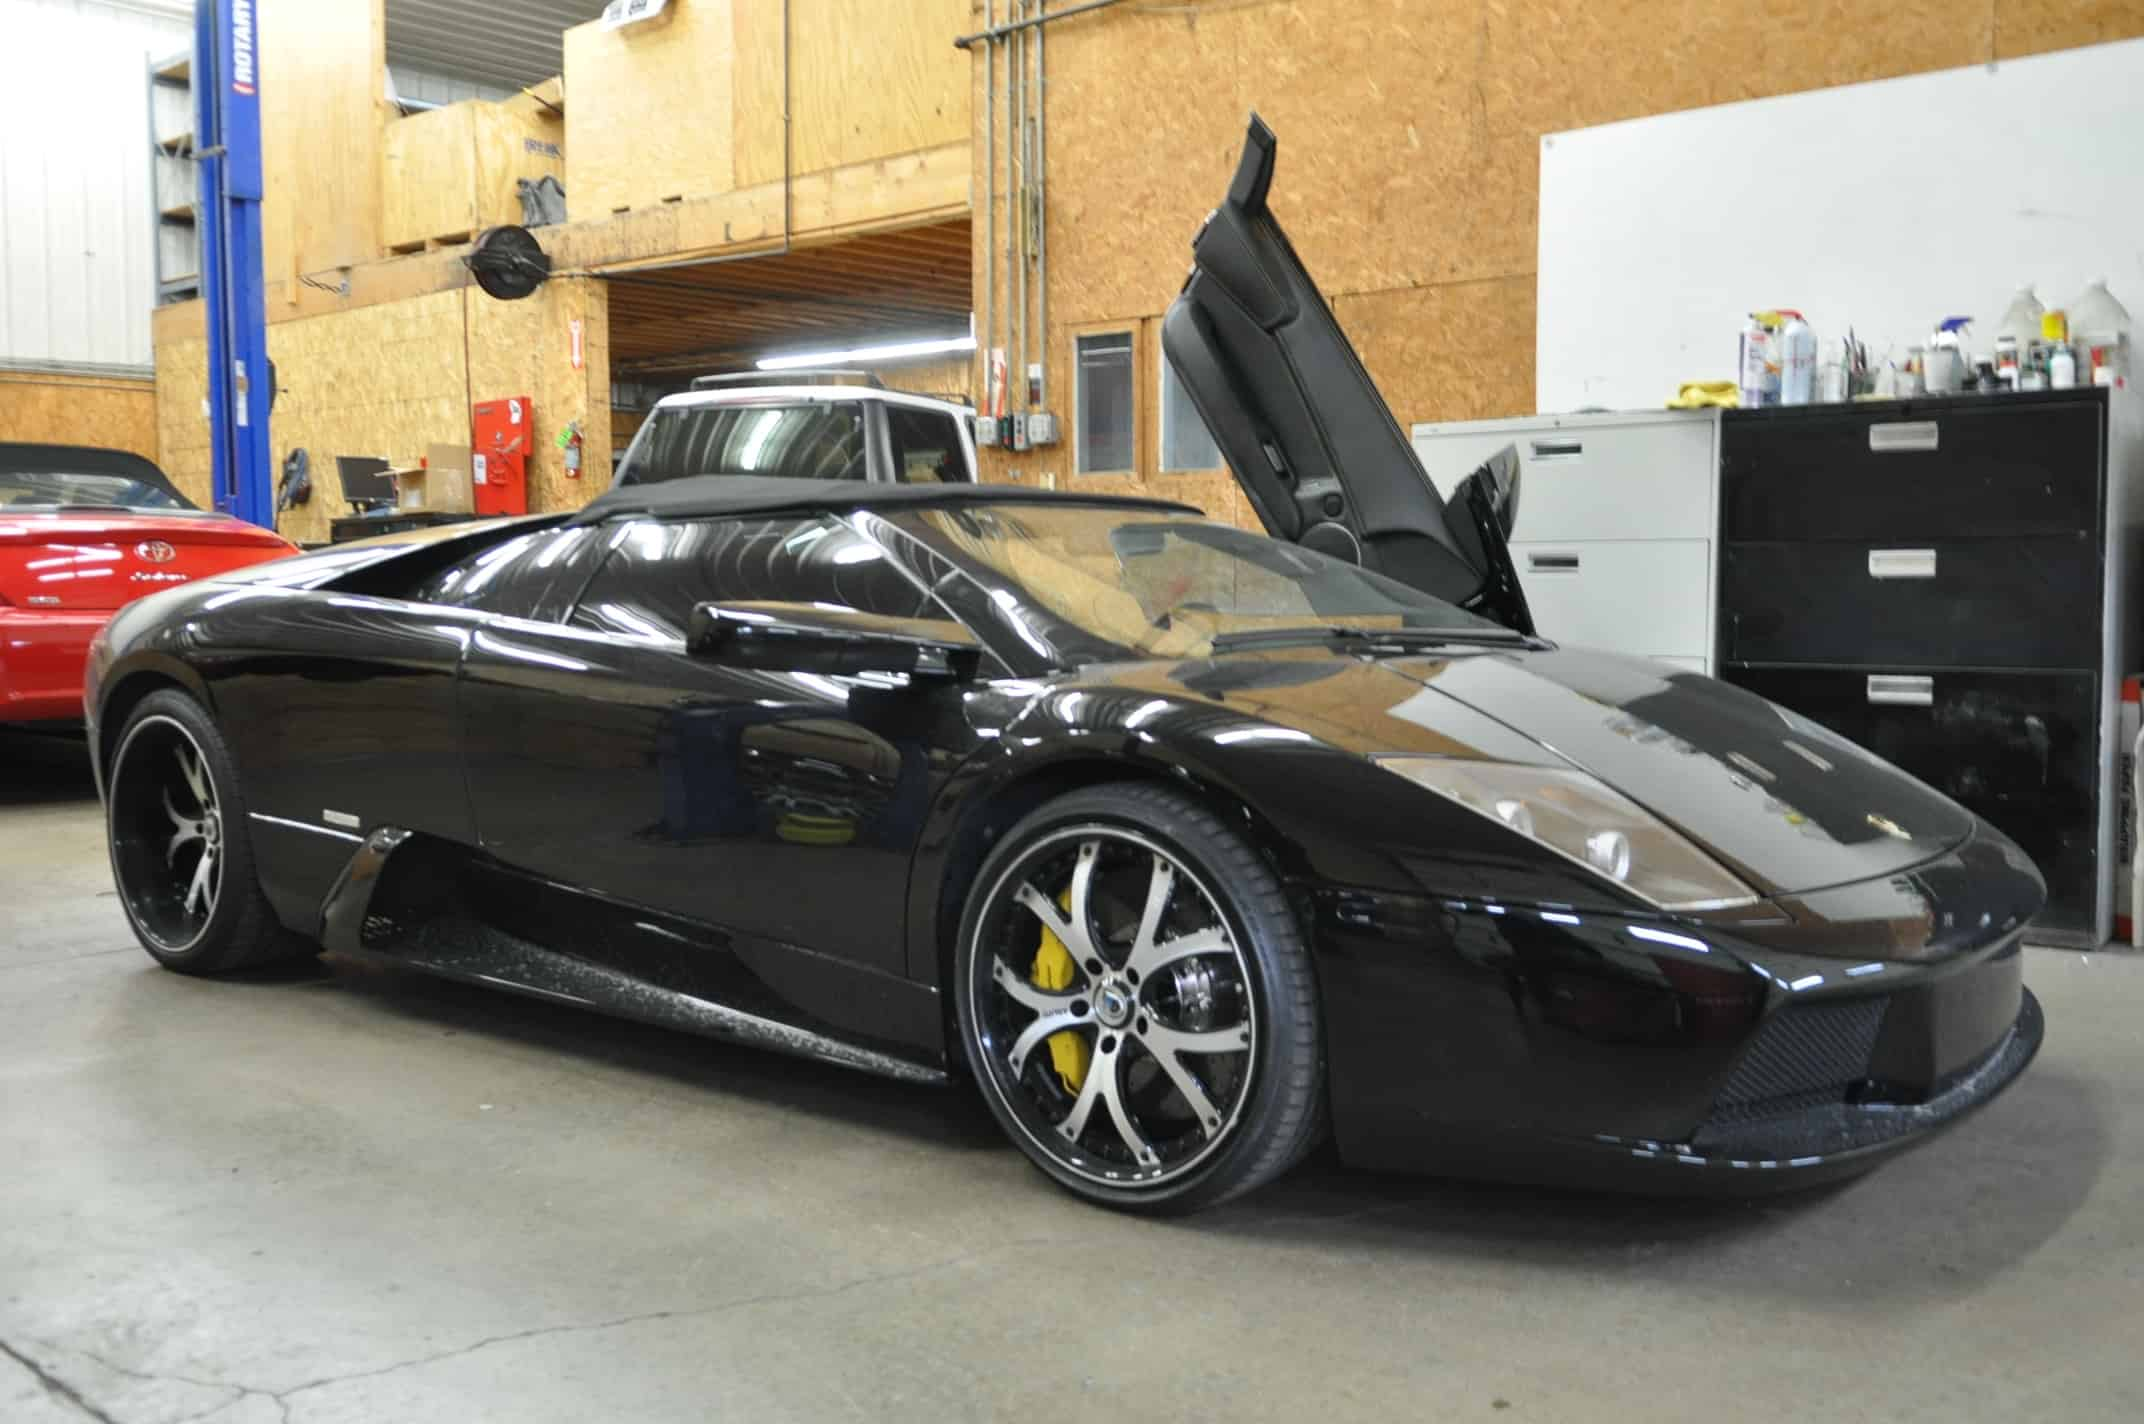 Lamborghini Murcielago diagnostic service, repair and maintenance in chicago naperville and plainfield Fluid MotorUnion  black